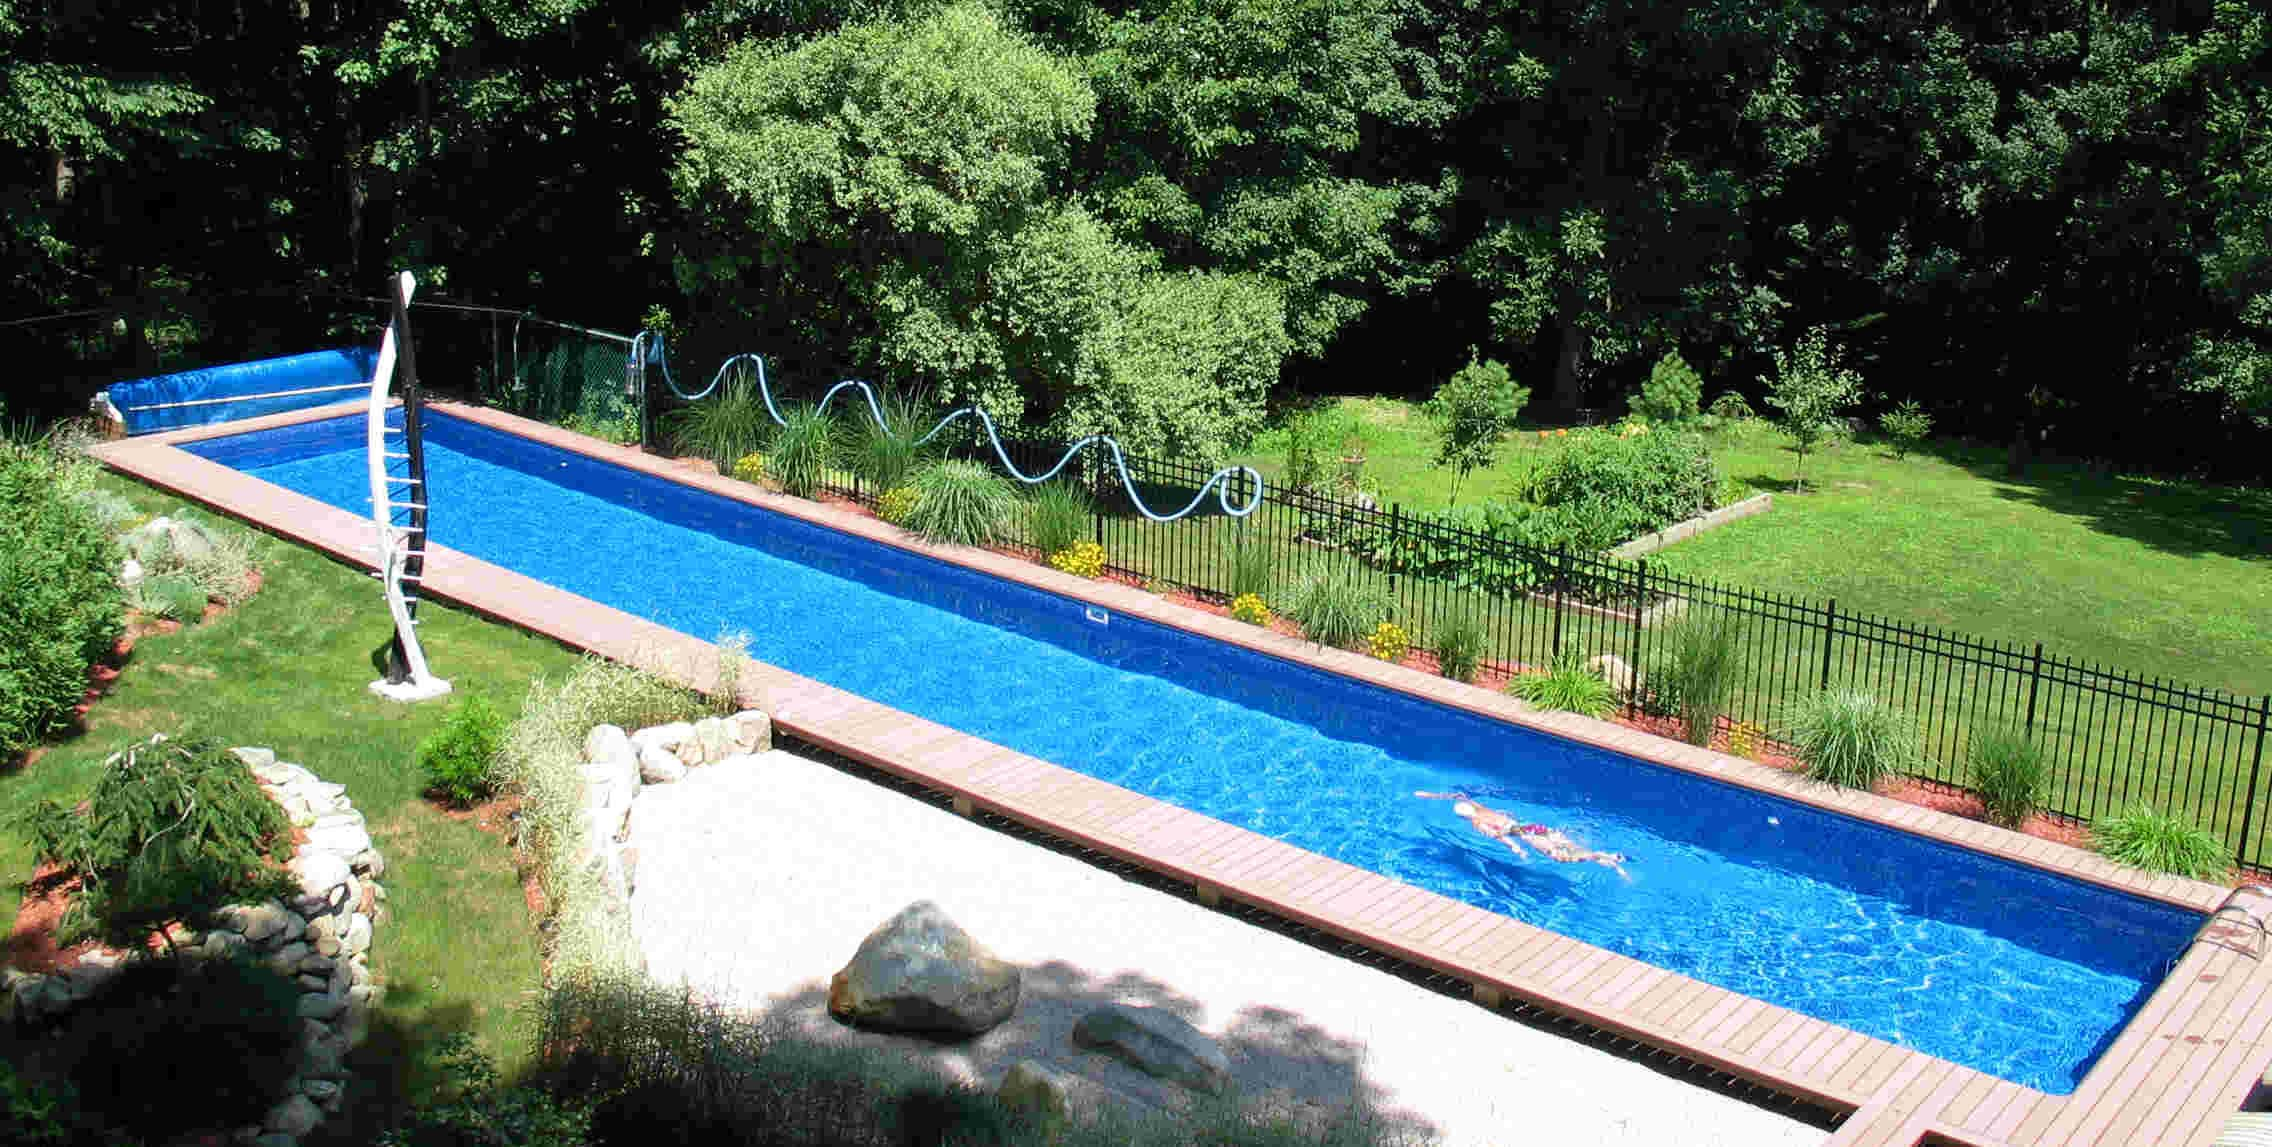 Diy inground swimming pool backyard design ideas for Poolside ideas